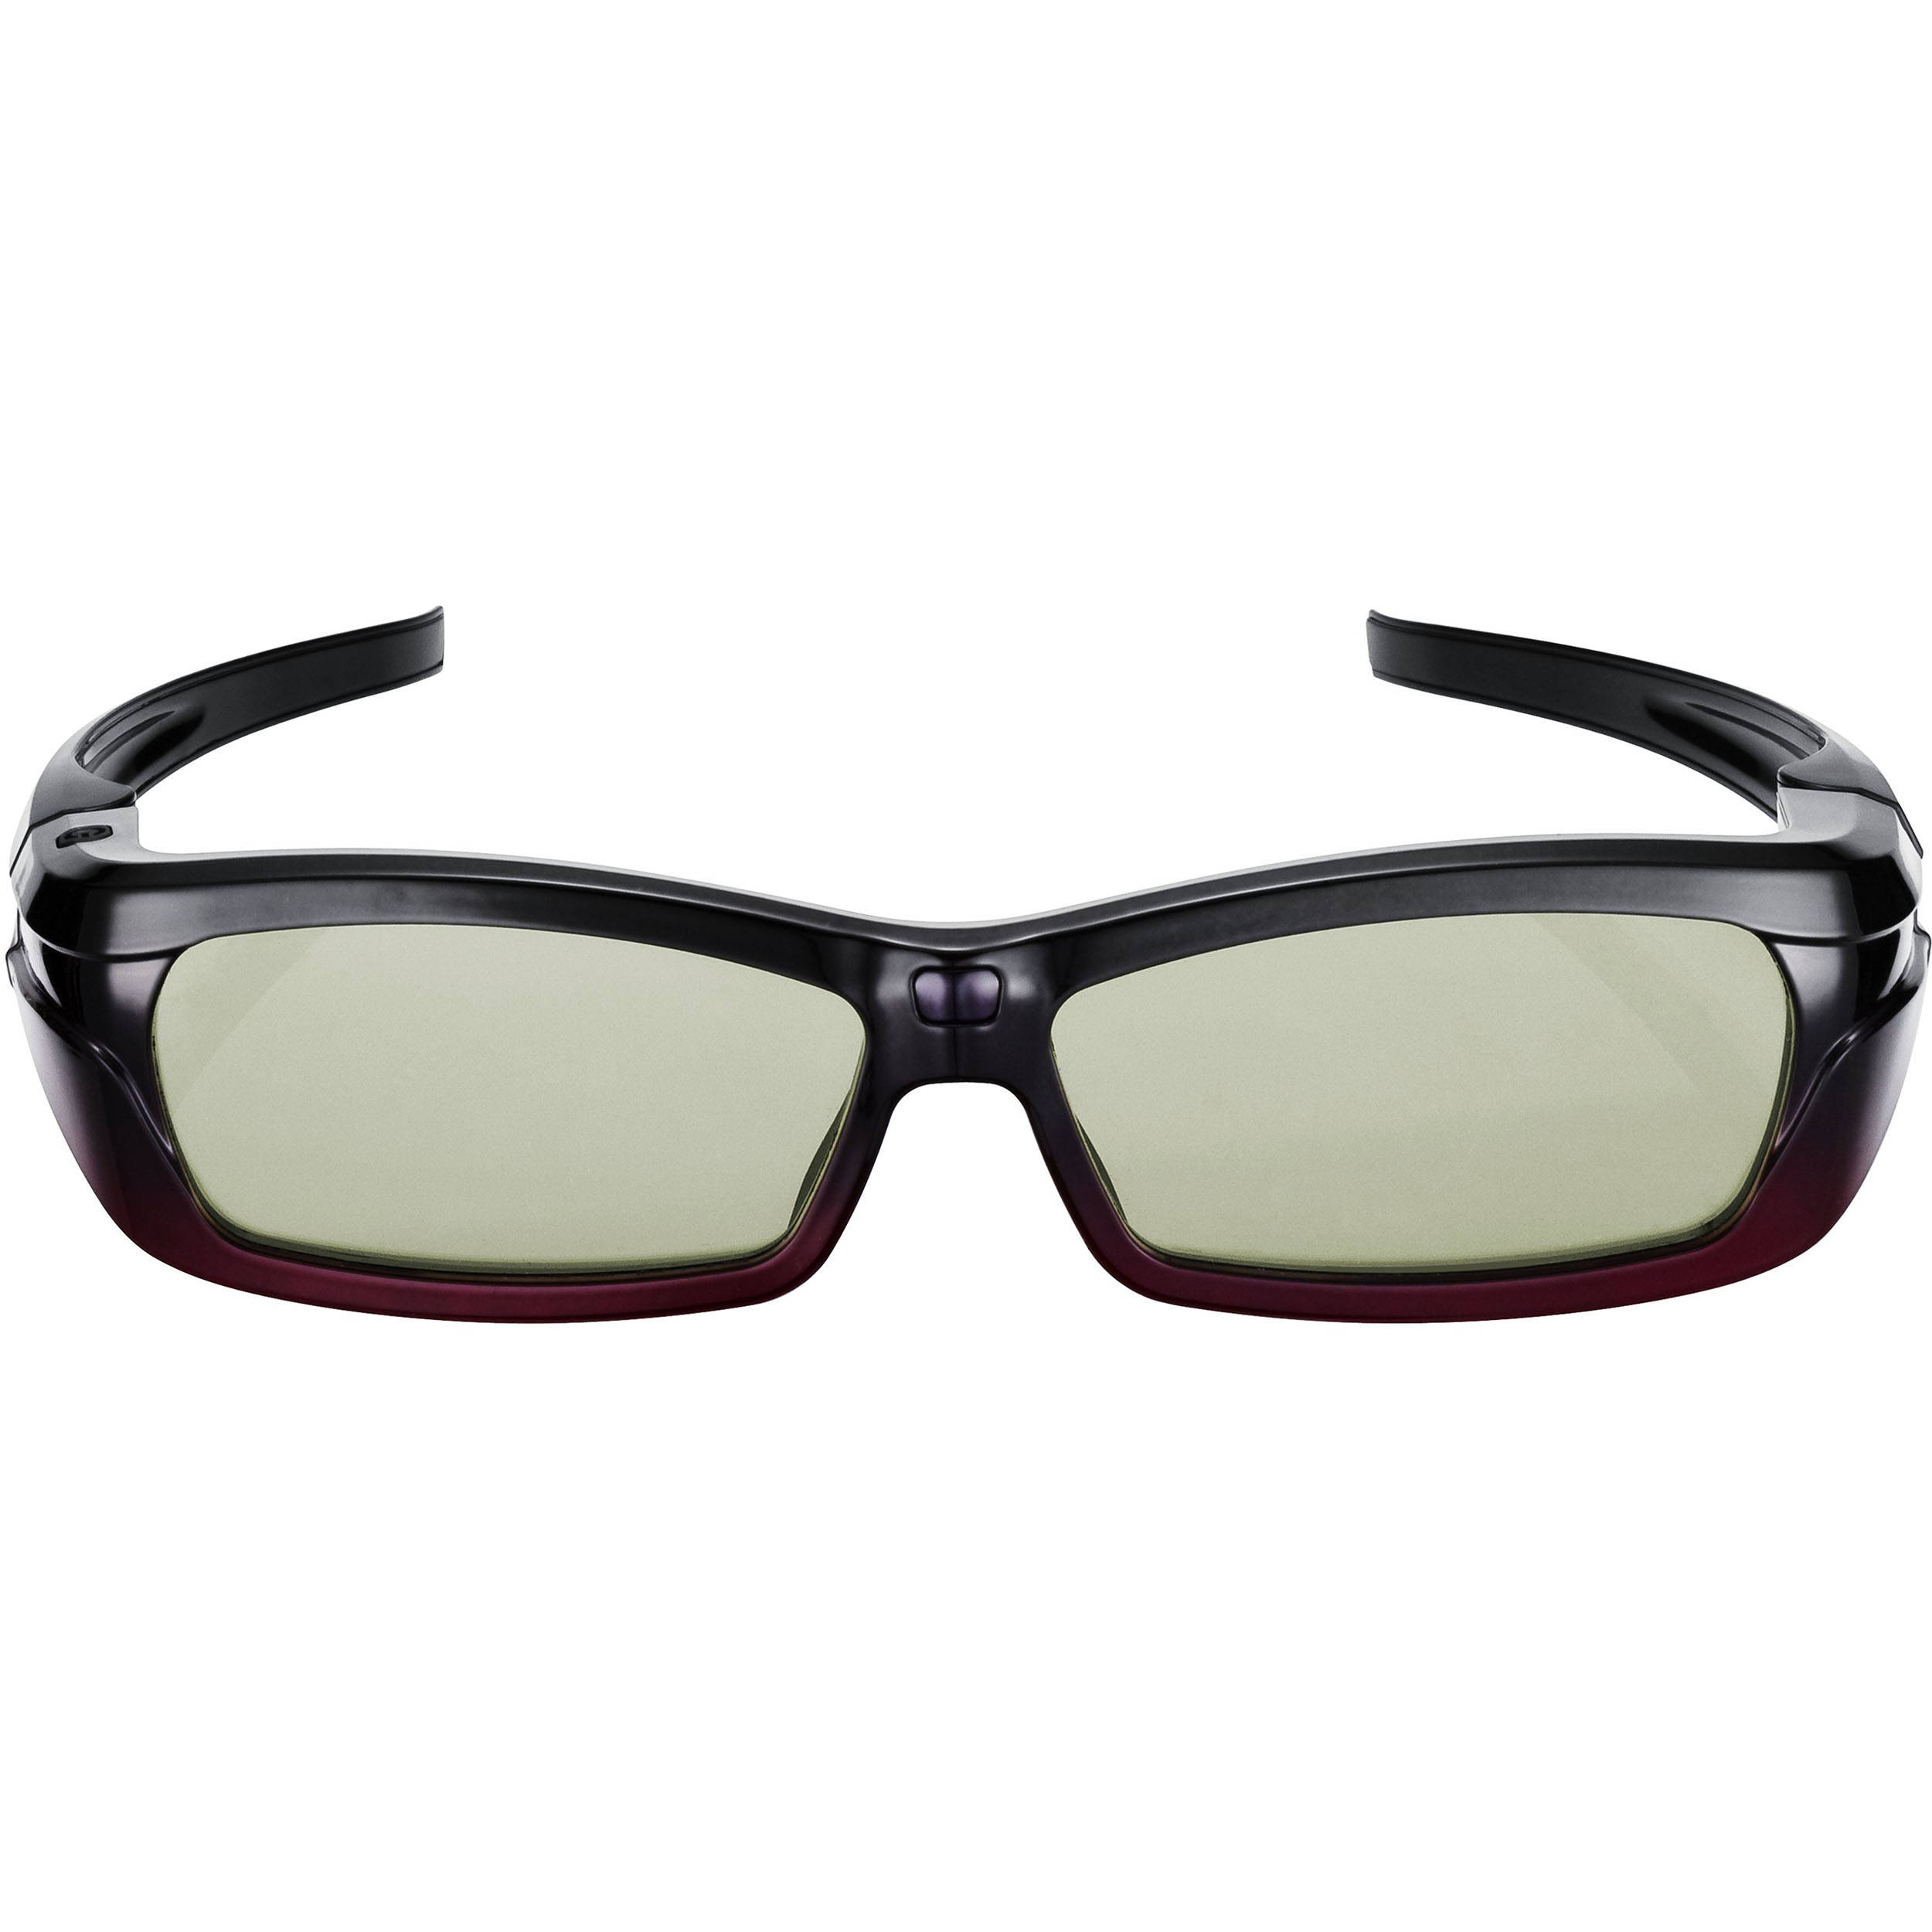 samsung rechargeable 3d active glasses for adults ssg